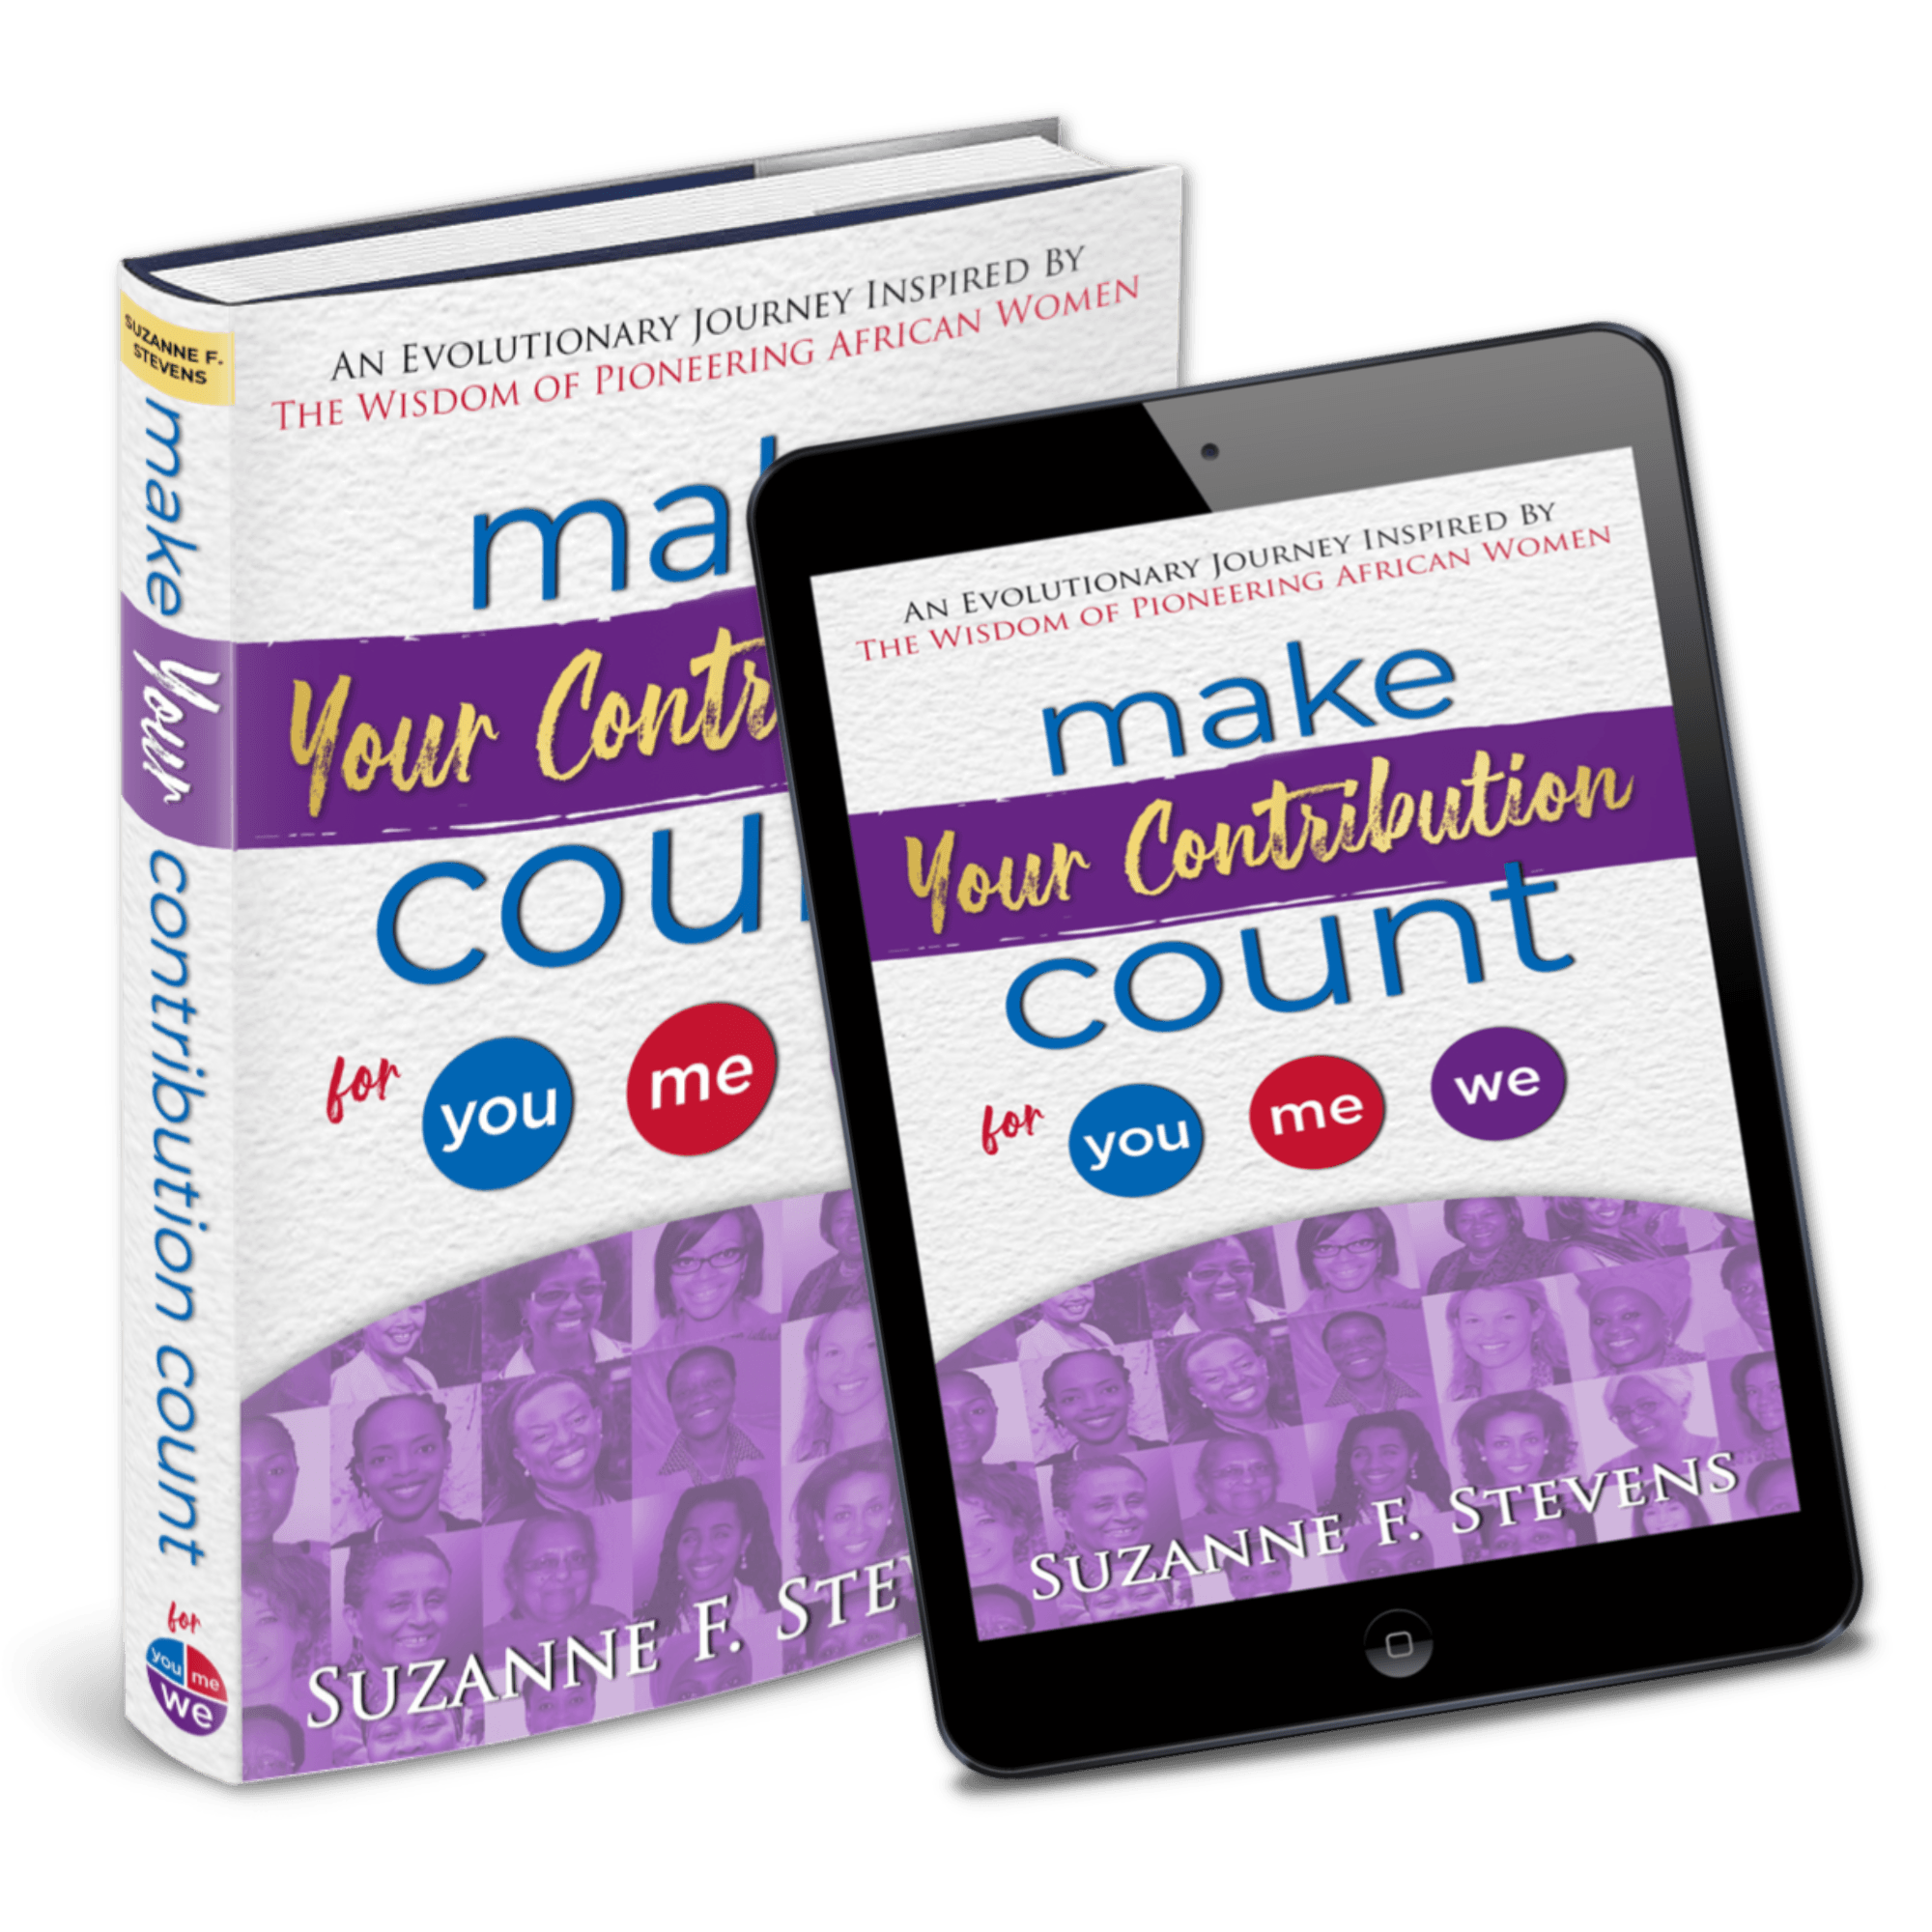 youmewe make your contribution count book